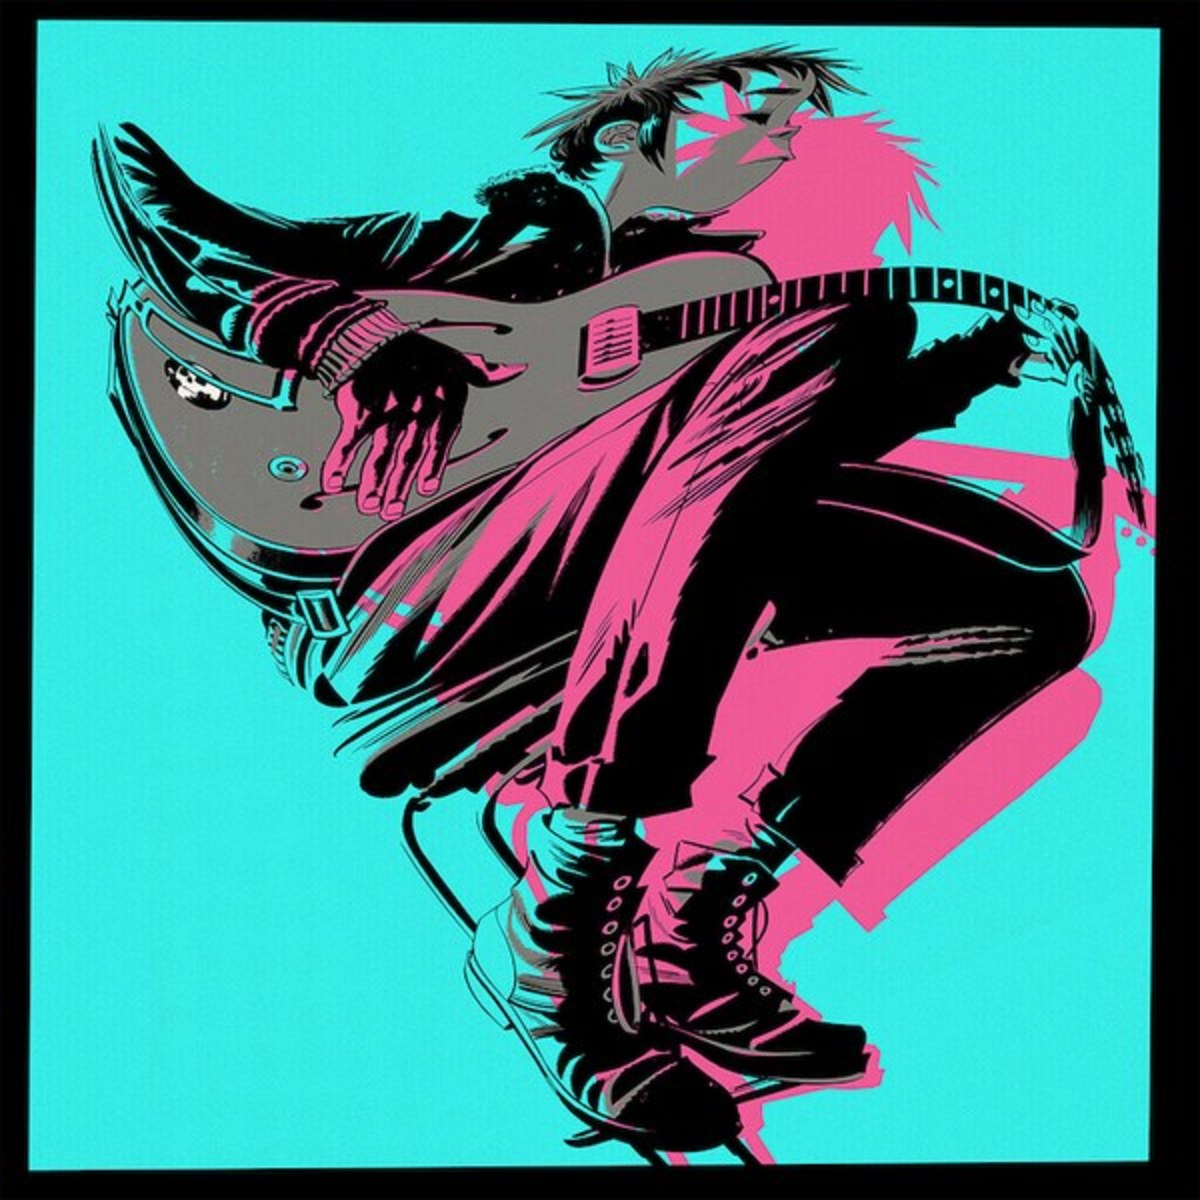 Gorillaz: 'The Now Now' Review